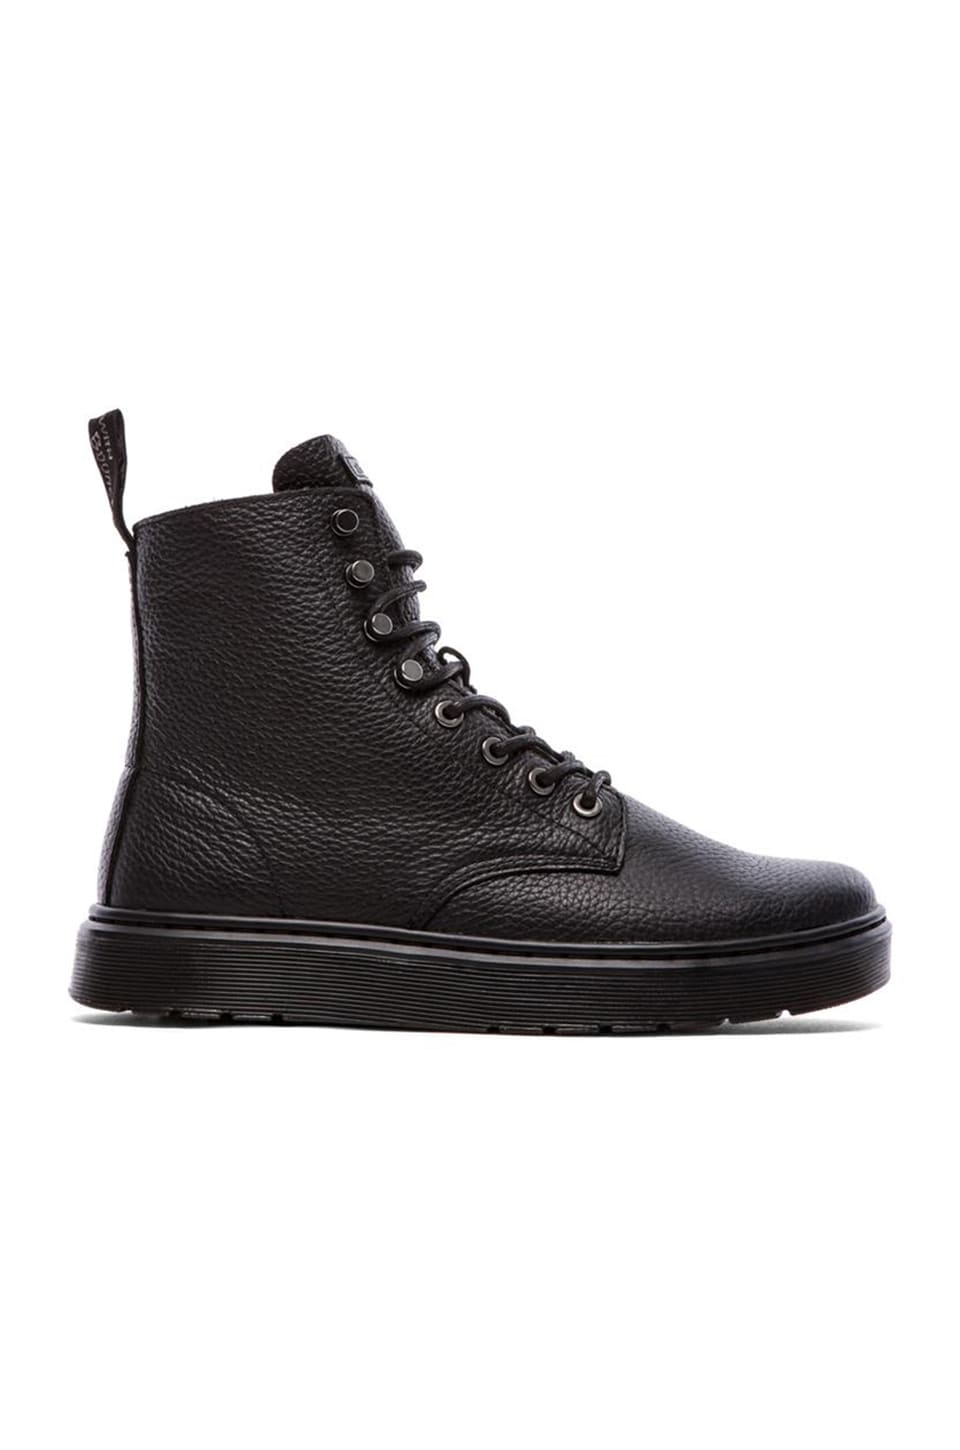 Dr. Martens Curtis 8-Tie Boot in Black